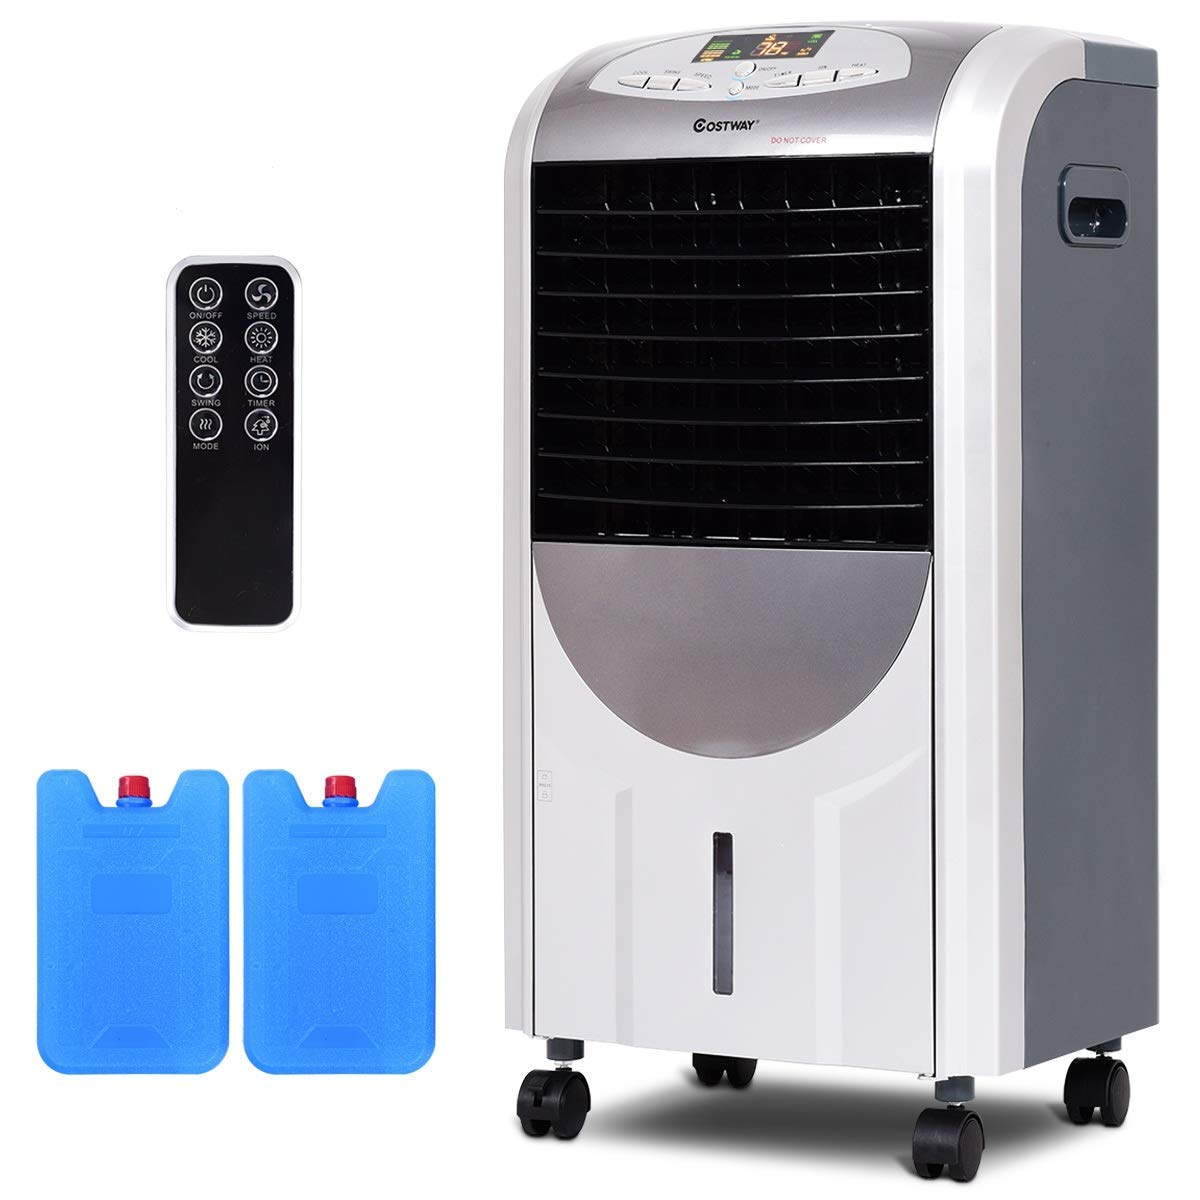 Best Cheap Portable Air Conditioner 2019 (Under $150 / $300